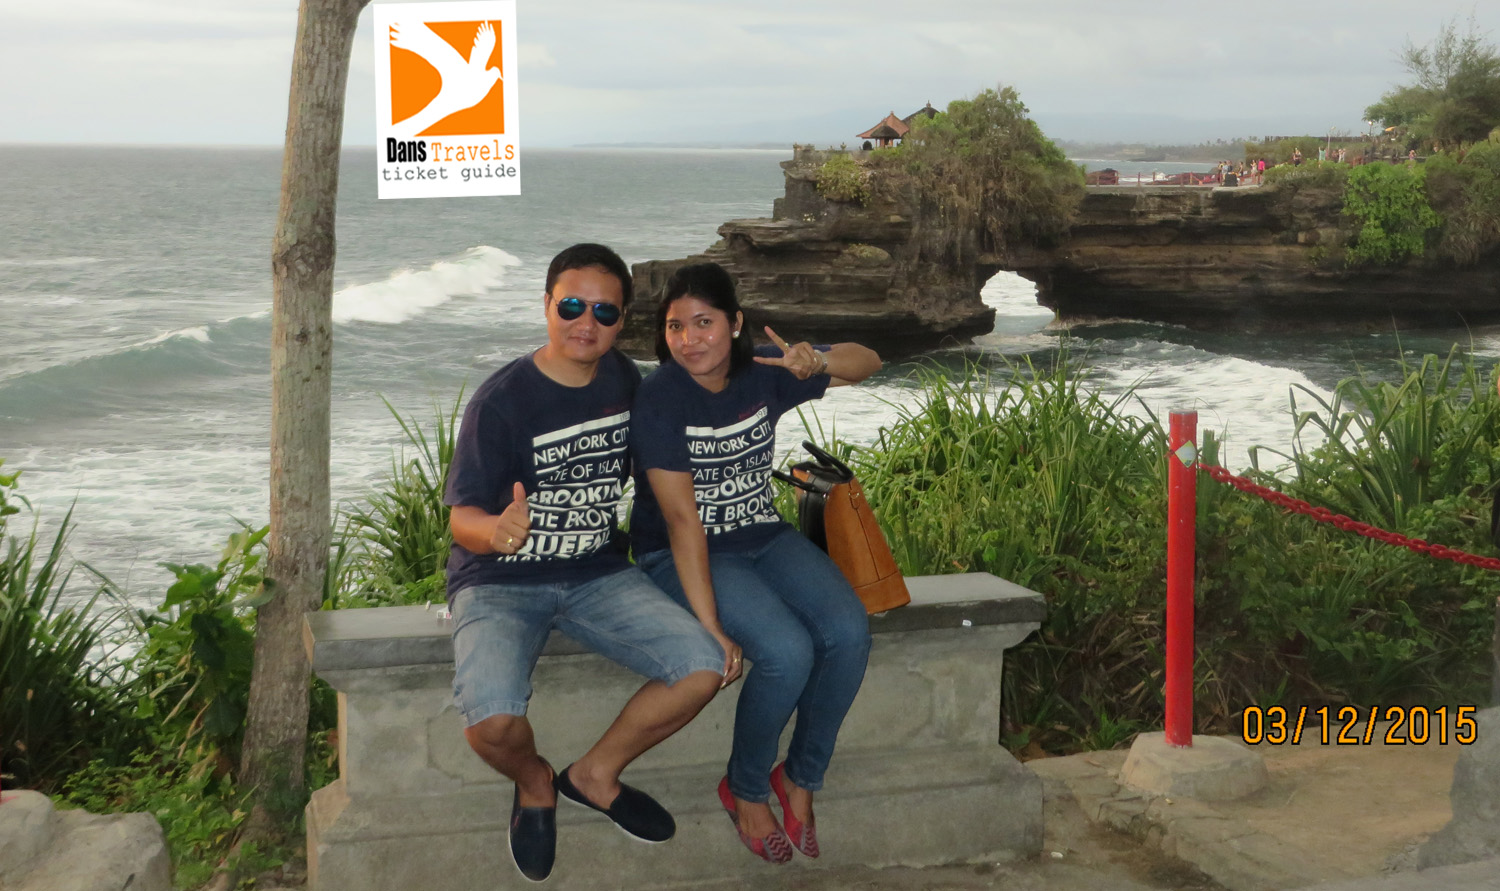 All Bali Package Deals Tiket Odyssey Submarine With Lunch Anak Mbak Vheby Dan Mas Jhacson Honeymoon 1 5 December 2015